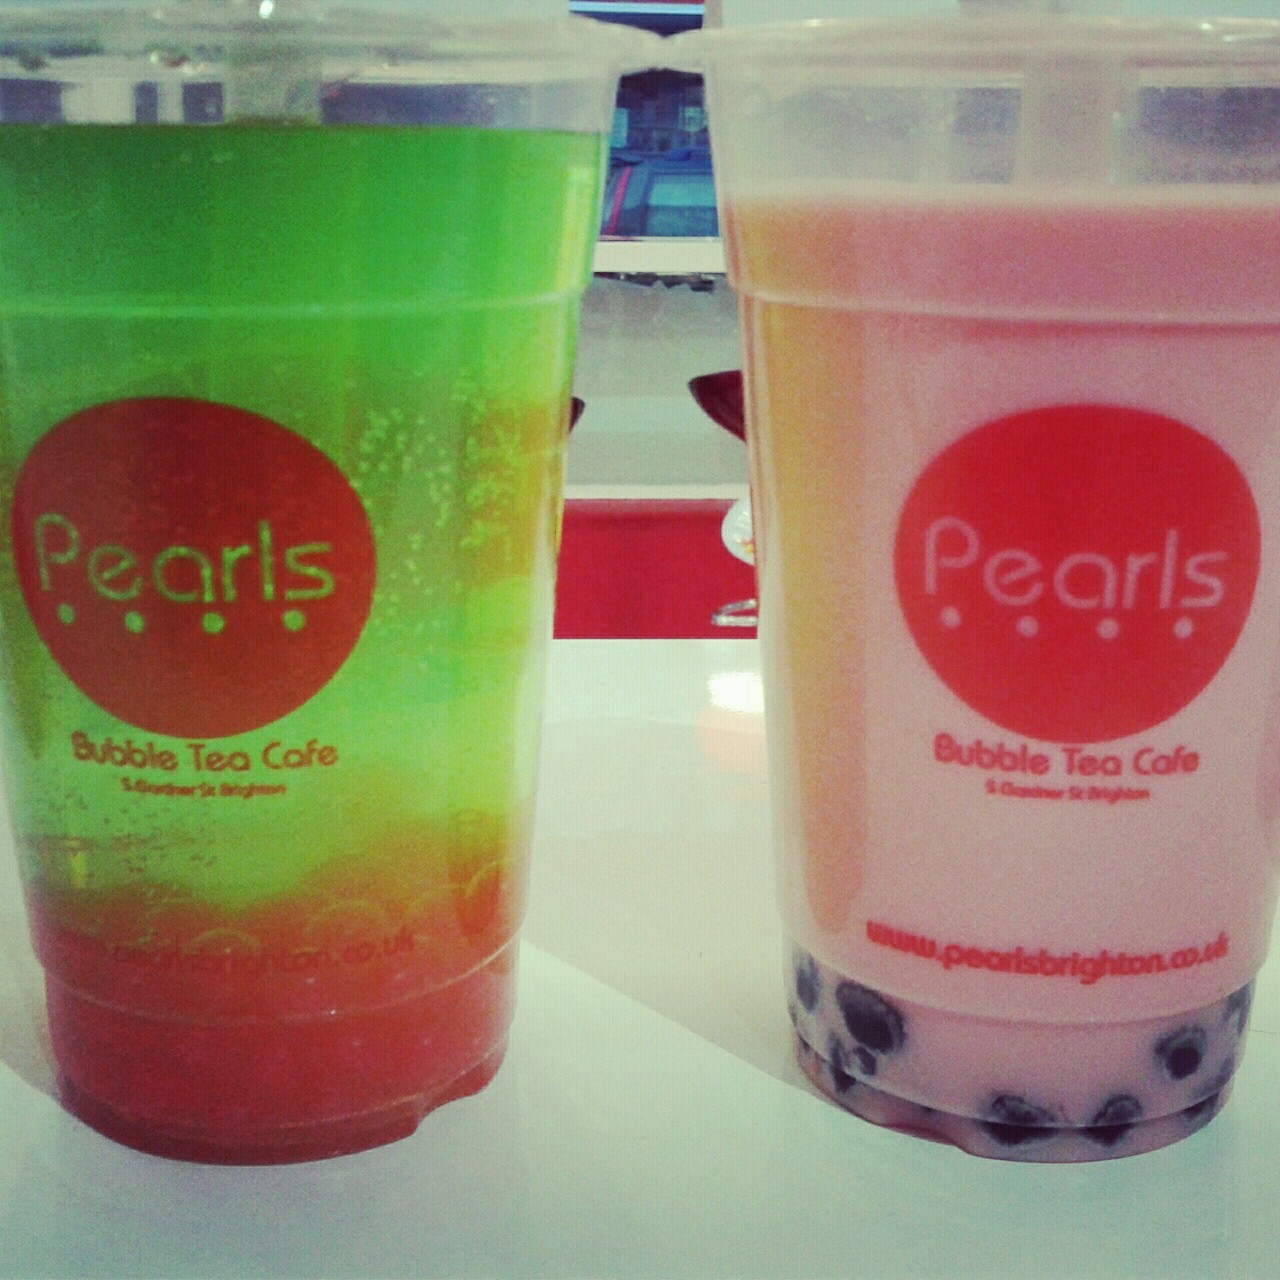 Pearls bubble tea cafe, Gardener street, Brighton